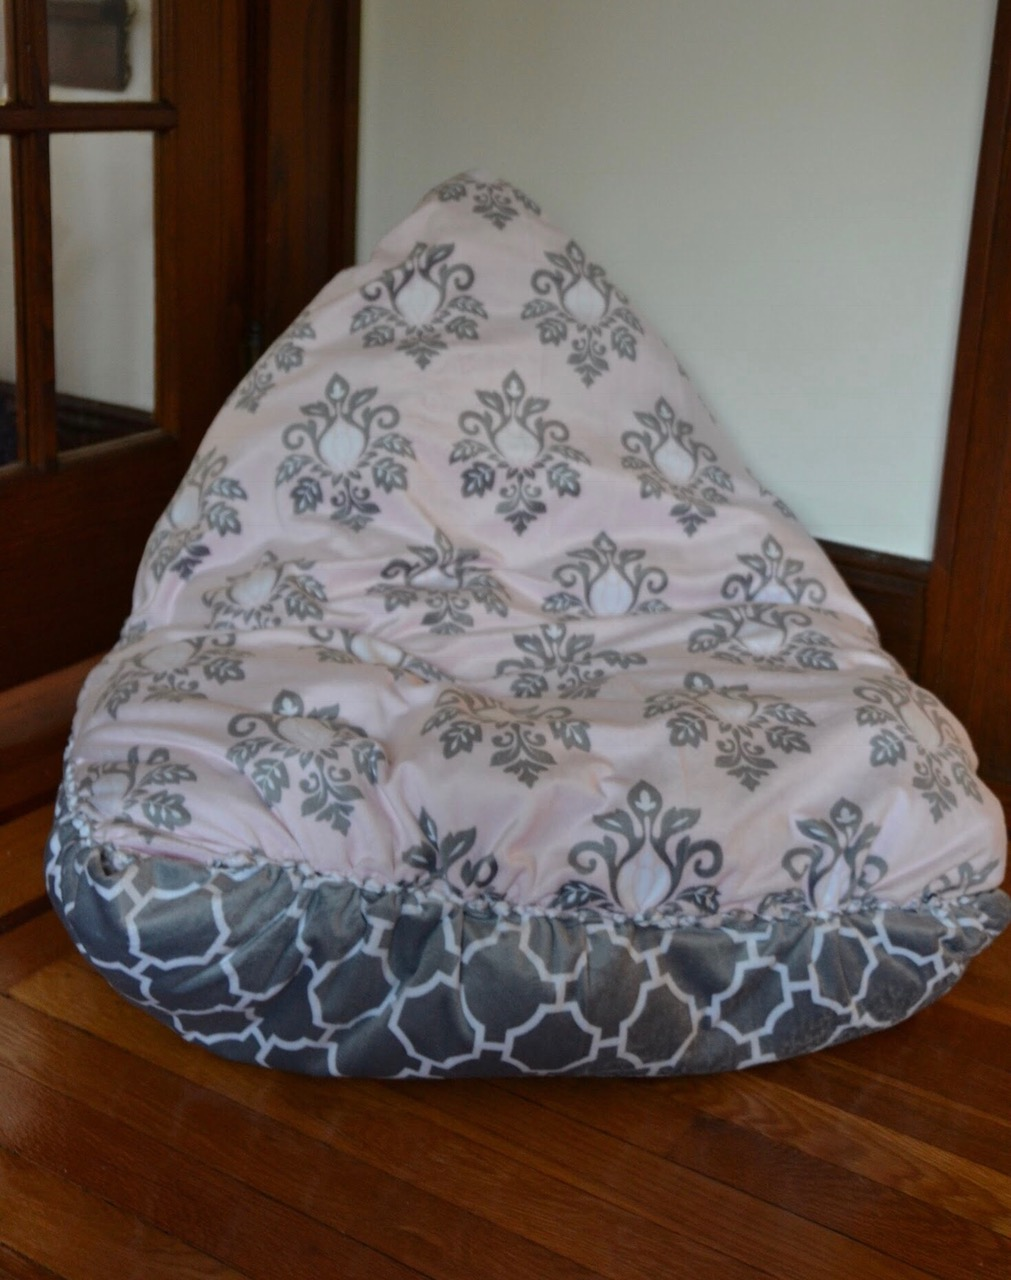 DIY No-Sew Bean Bag Chair for Kids